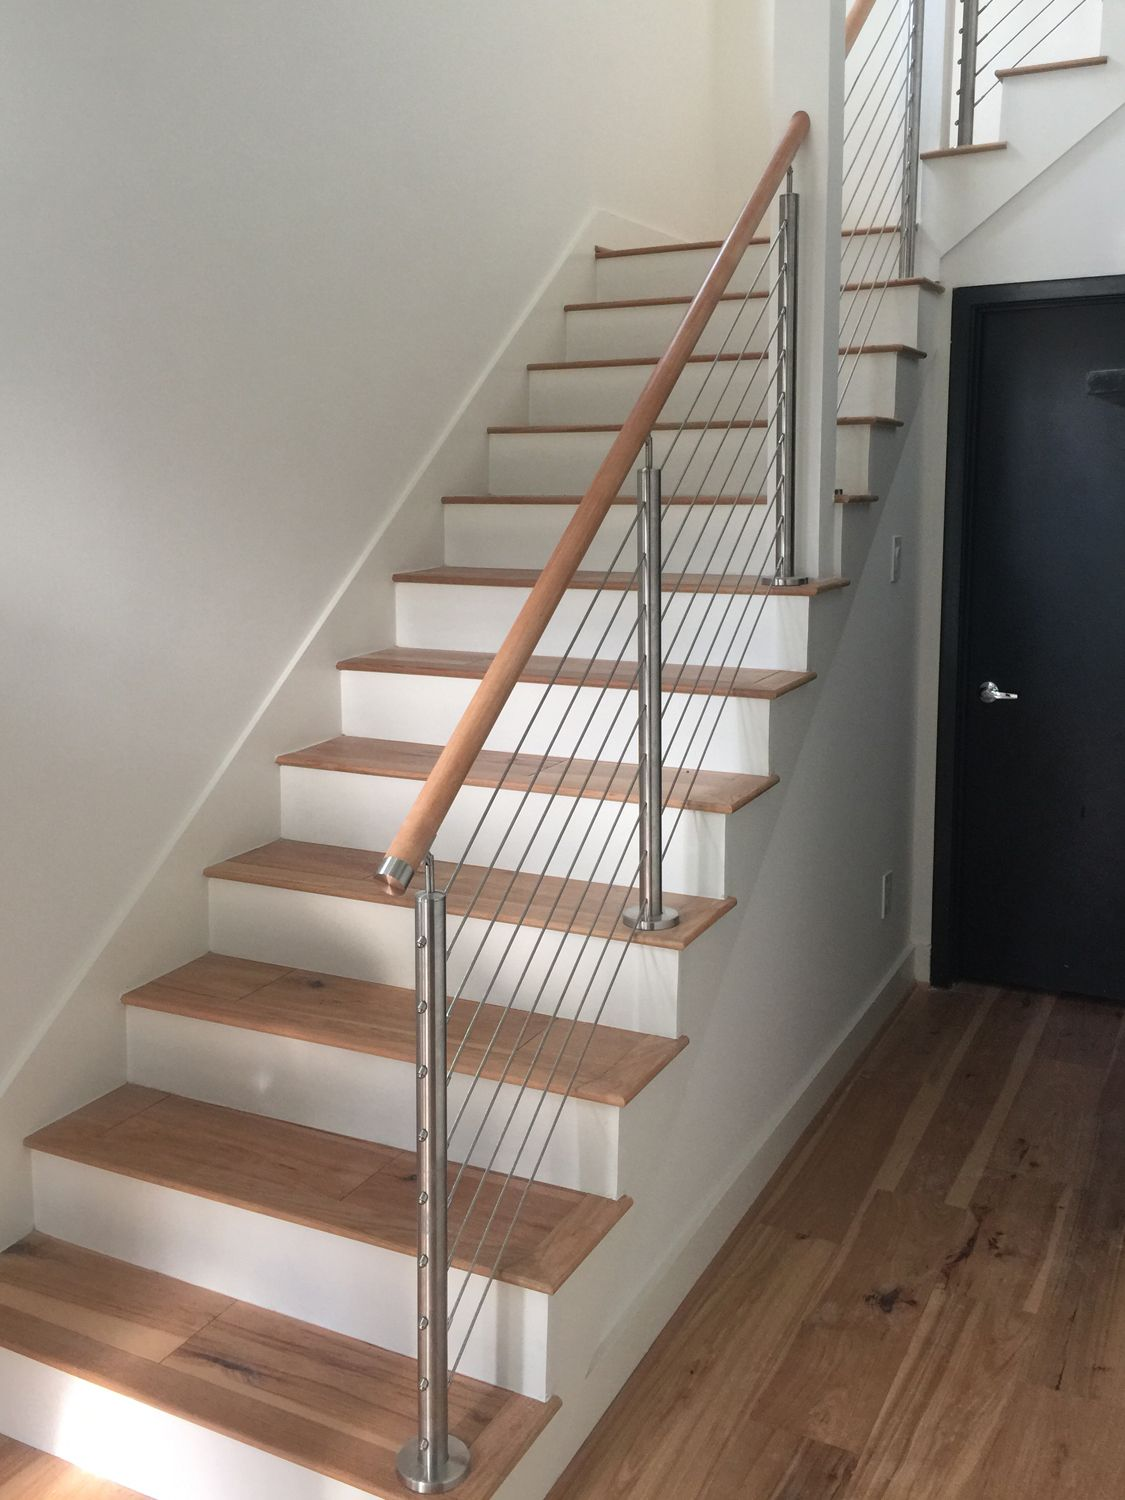 Our Stainless Steel And Cable Railing Brings A Simple Modern Touch To Your Space Stairs Design Interior Stairs Design Modern Staircase Design